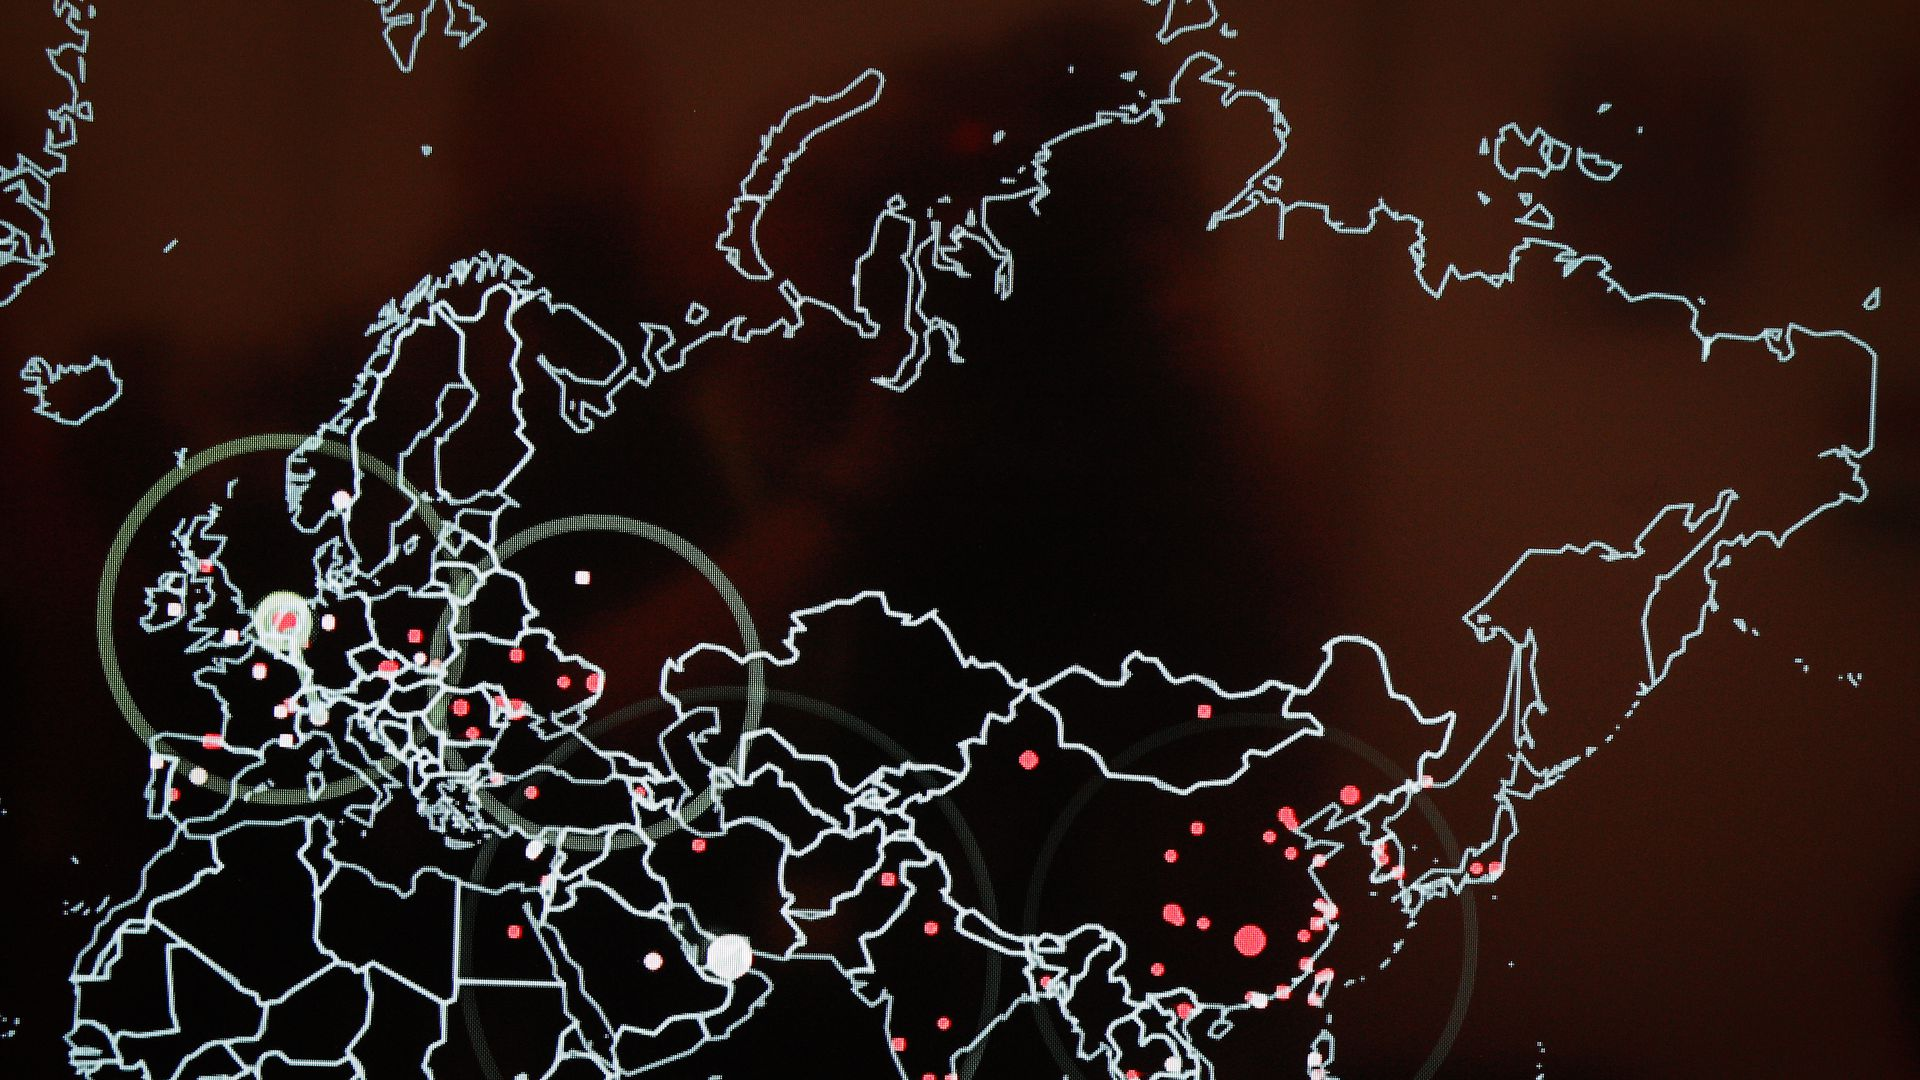 Map showing red pinpoints at certain cities around the world